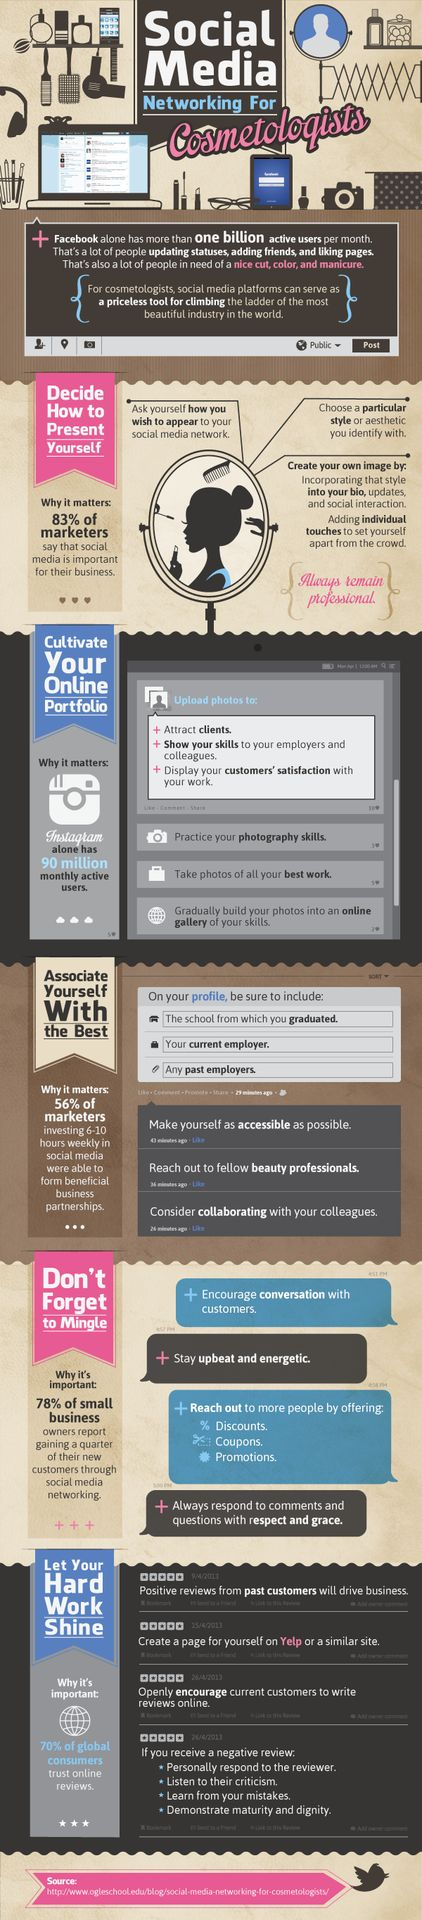 This infographic is an awesome example for cosmetologists - hair dressers, manicures, etc. Communications for all - PR it Yourself!